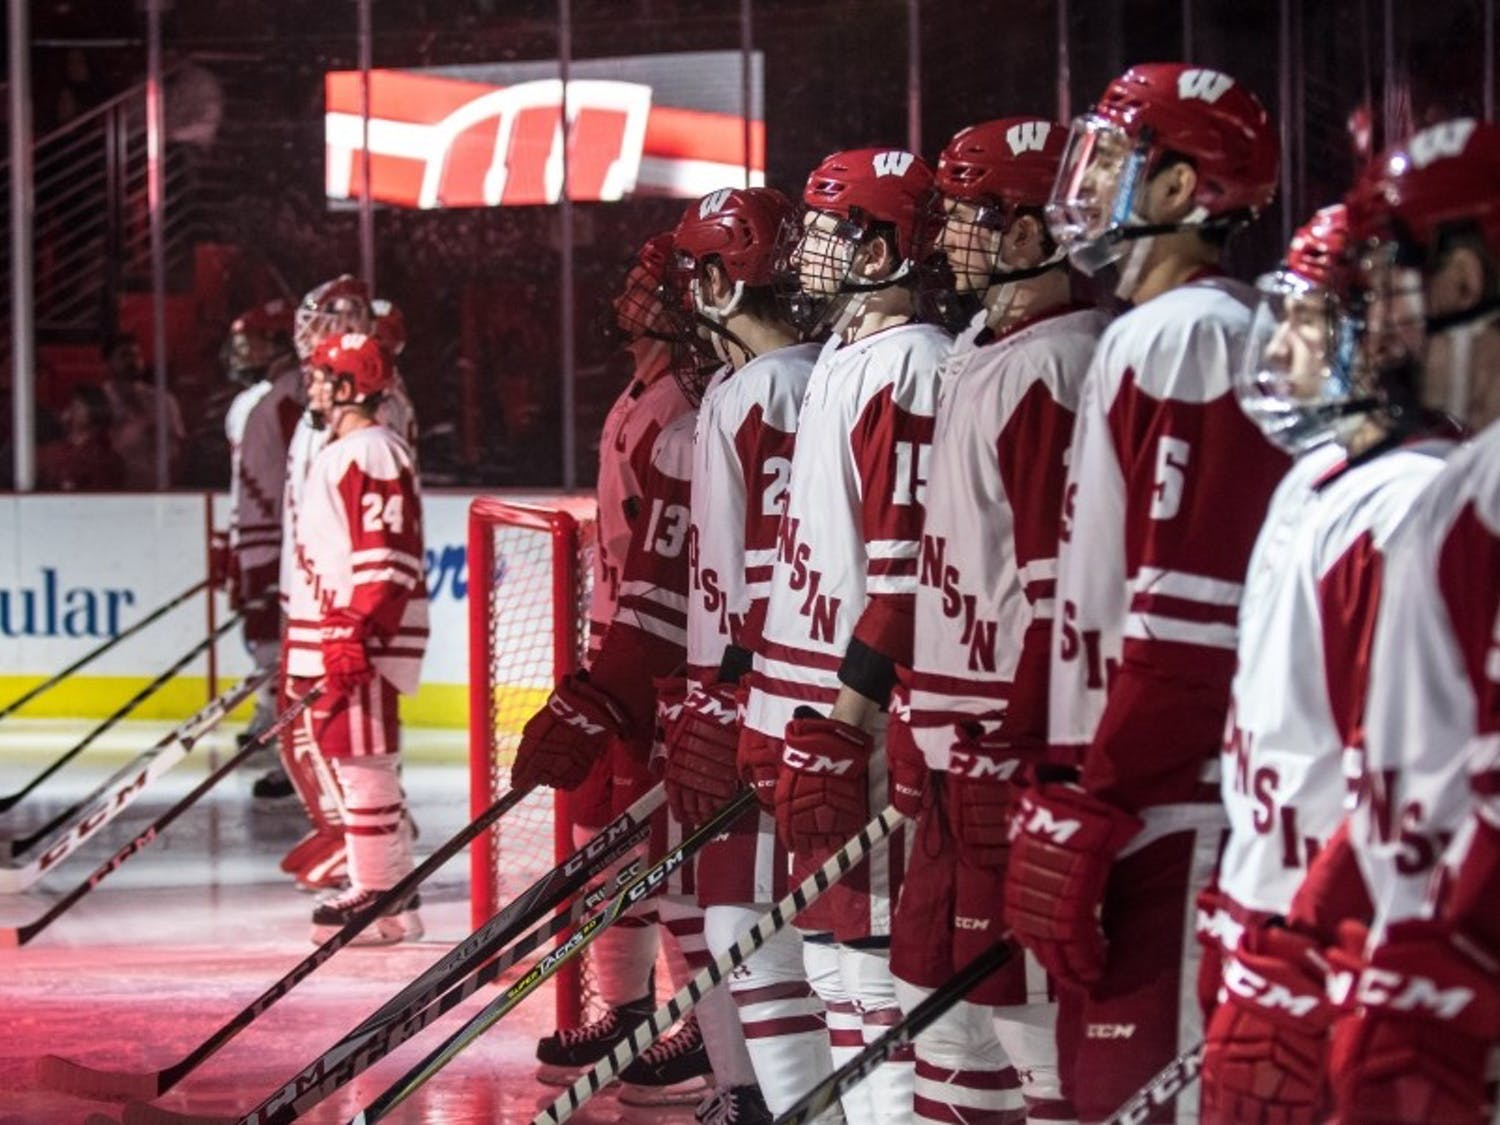 Wisconsin split its opening road weekend of 2018-19 and maintained its offensive output with nine goals in the two games.